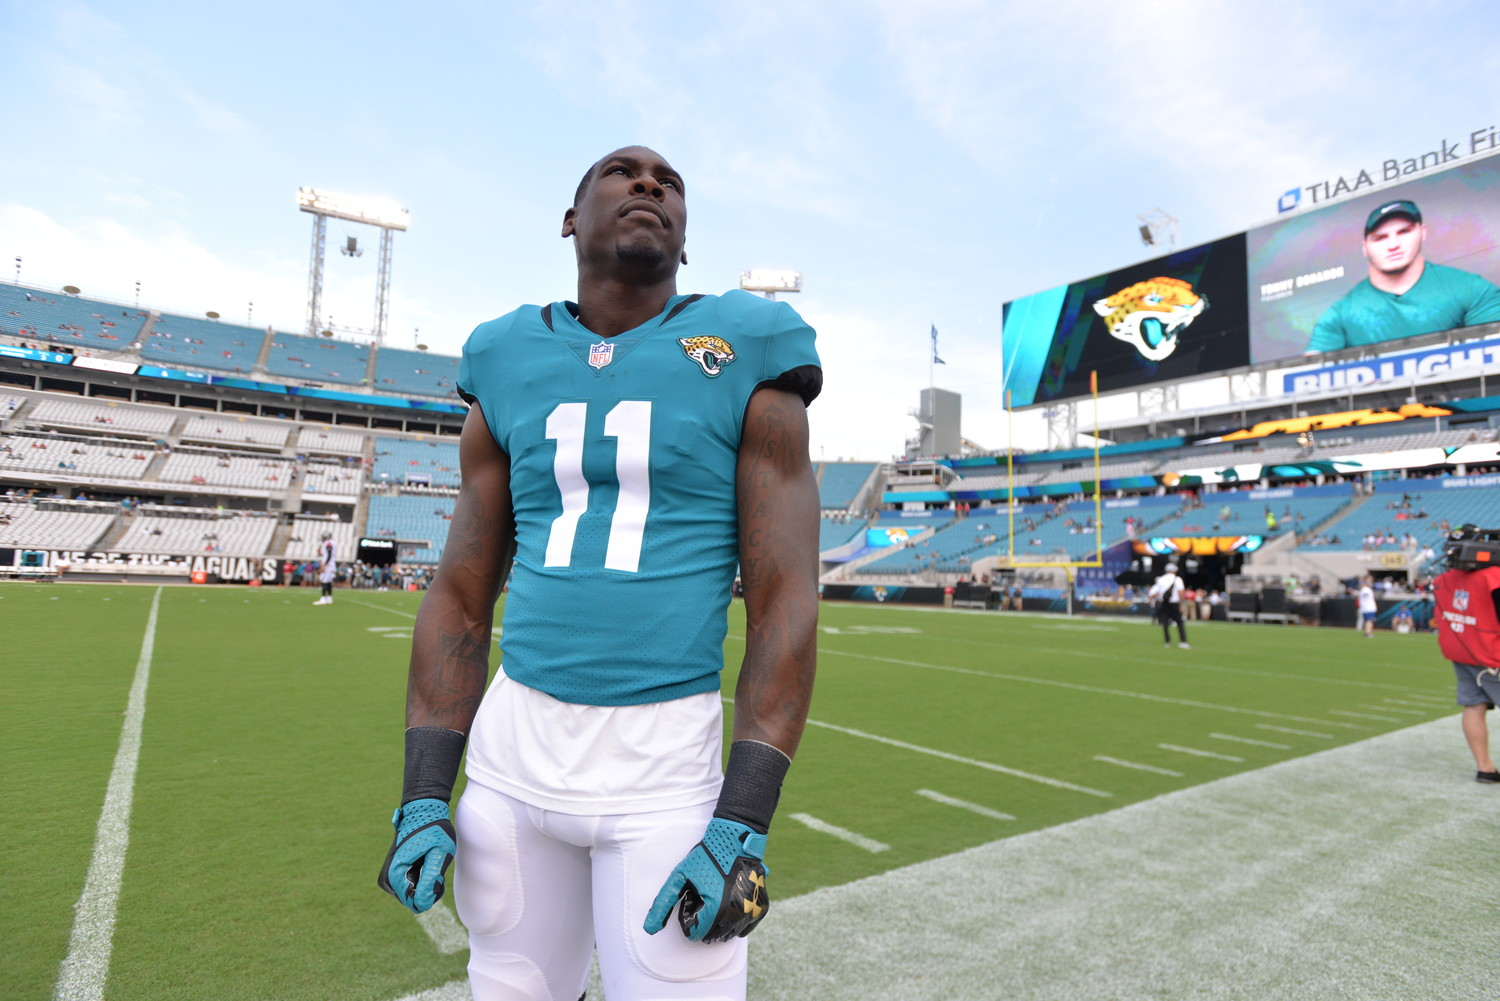 Jaguars wide receiver Marqise Lee is out for the season after suffering a knee injury during last Saturday's preseason game against the Atlanta Falcons.